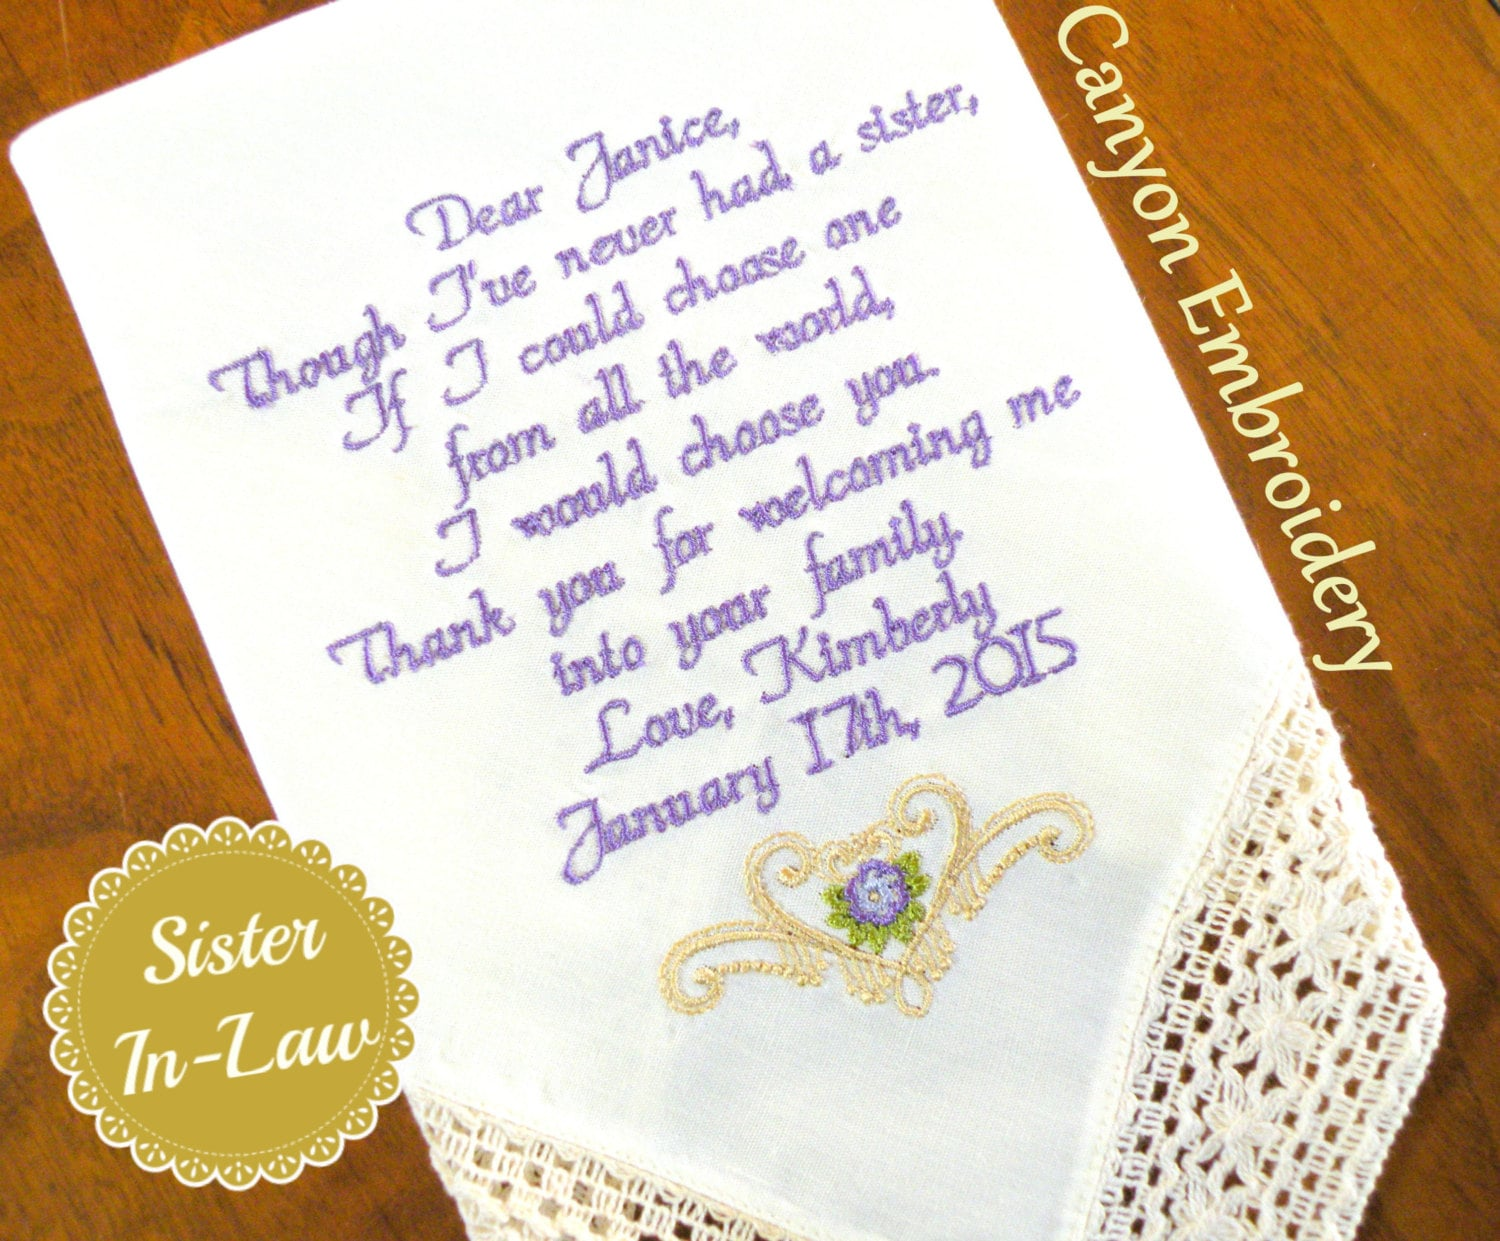 Sister Sister In-Law Wedding Gift Embroidered Wedding